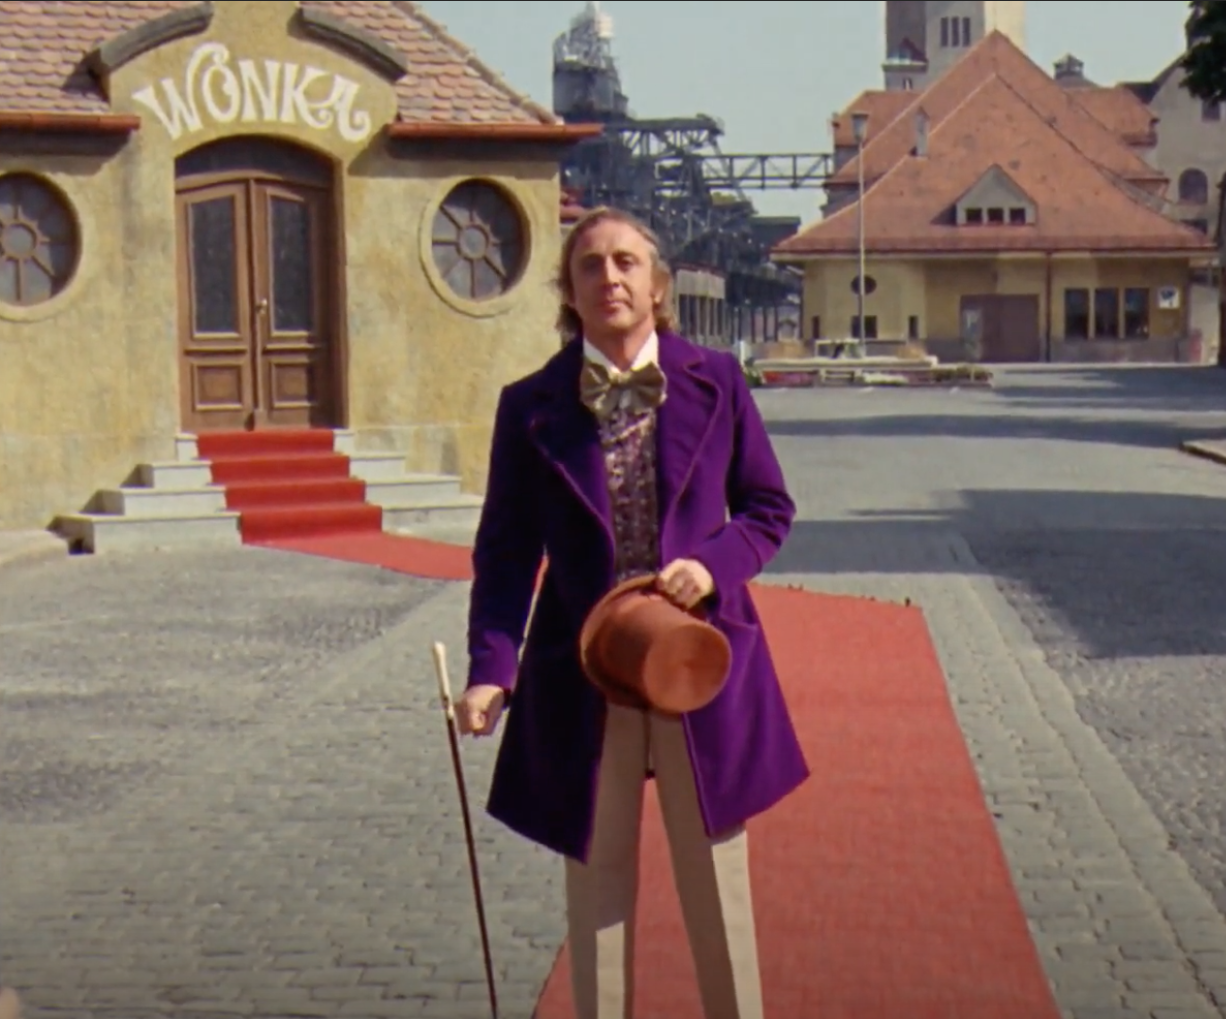 Screenshot 2021 06 01 at 13.01.36 e1622548992833 28 Things You Probably Never Knew About Willy Wonka And The Chocolate Factory